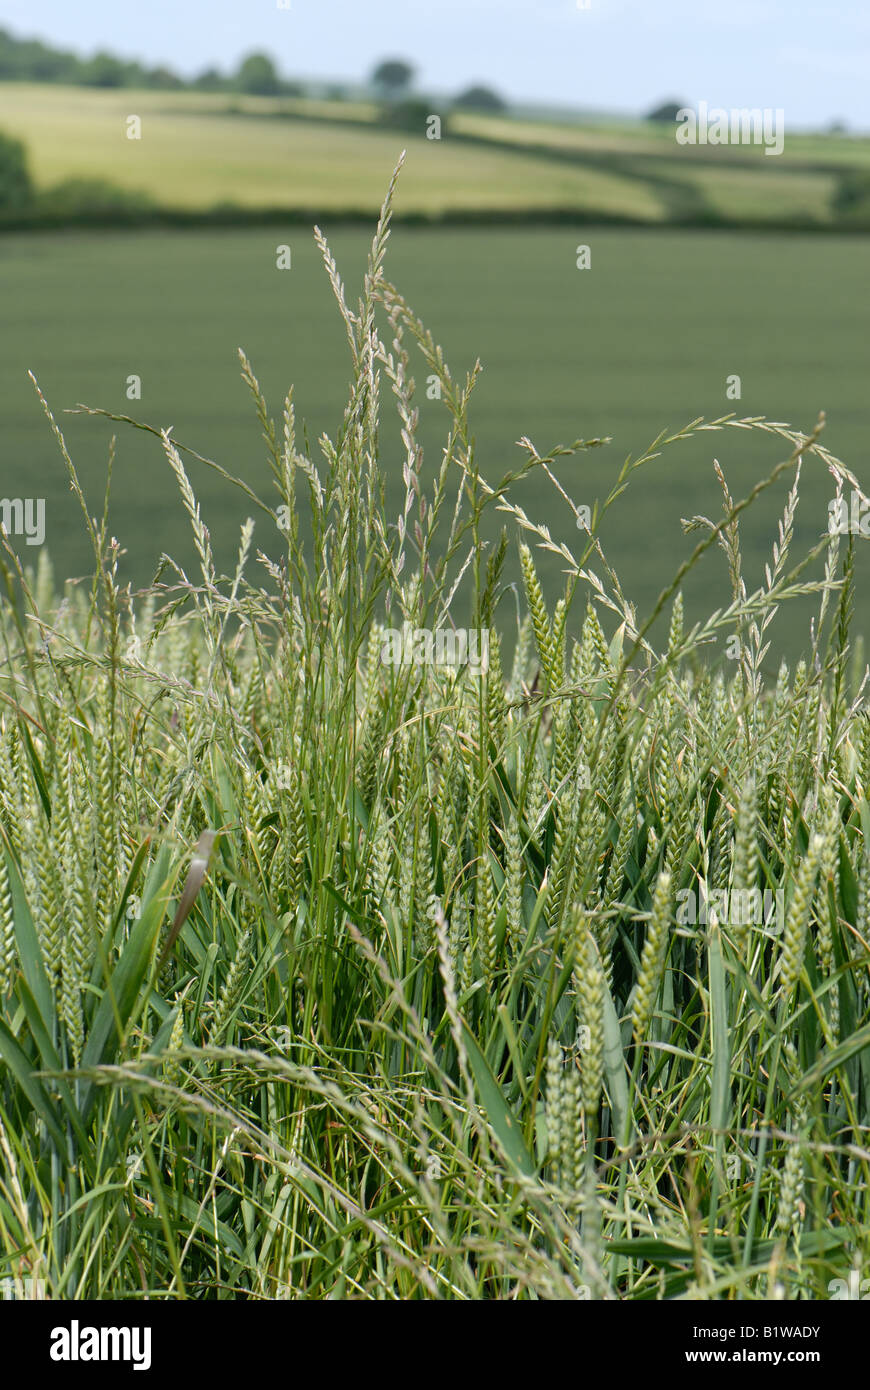 how to kill weeds in ryegrass